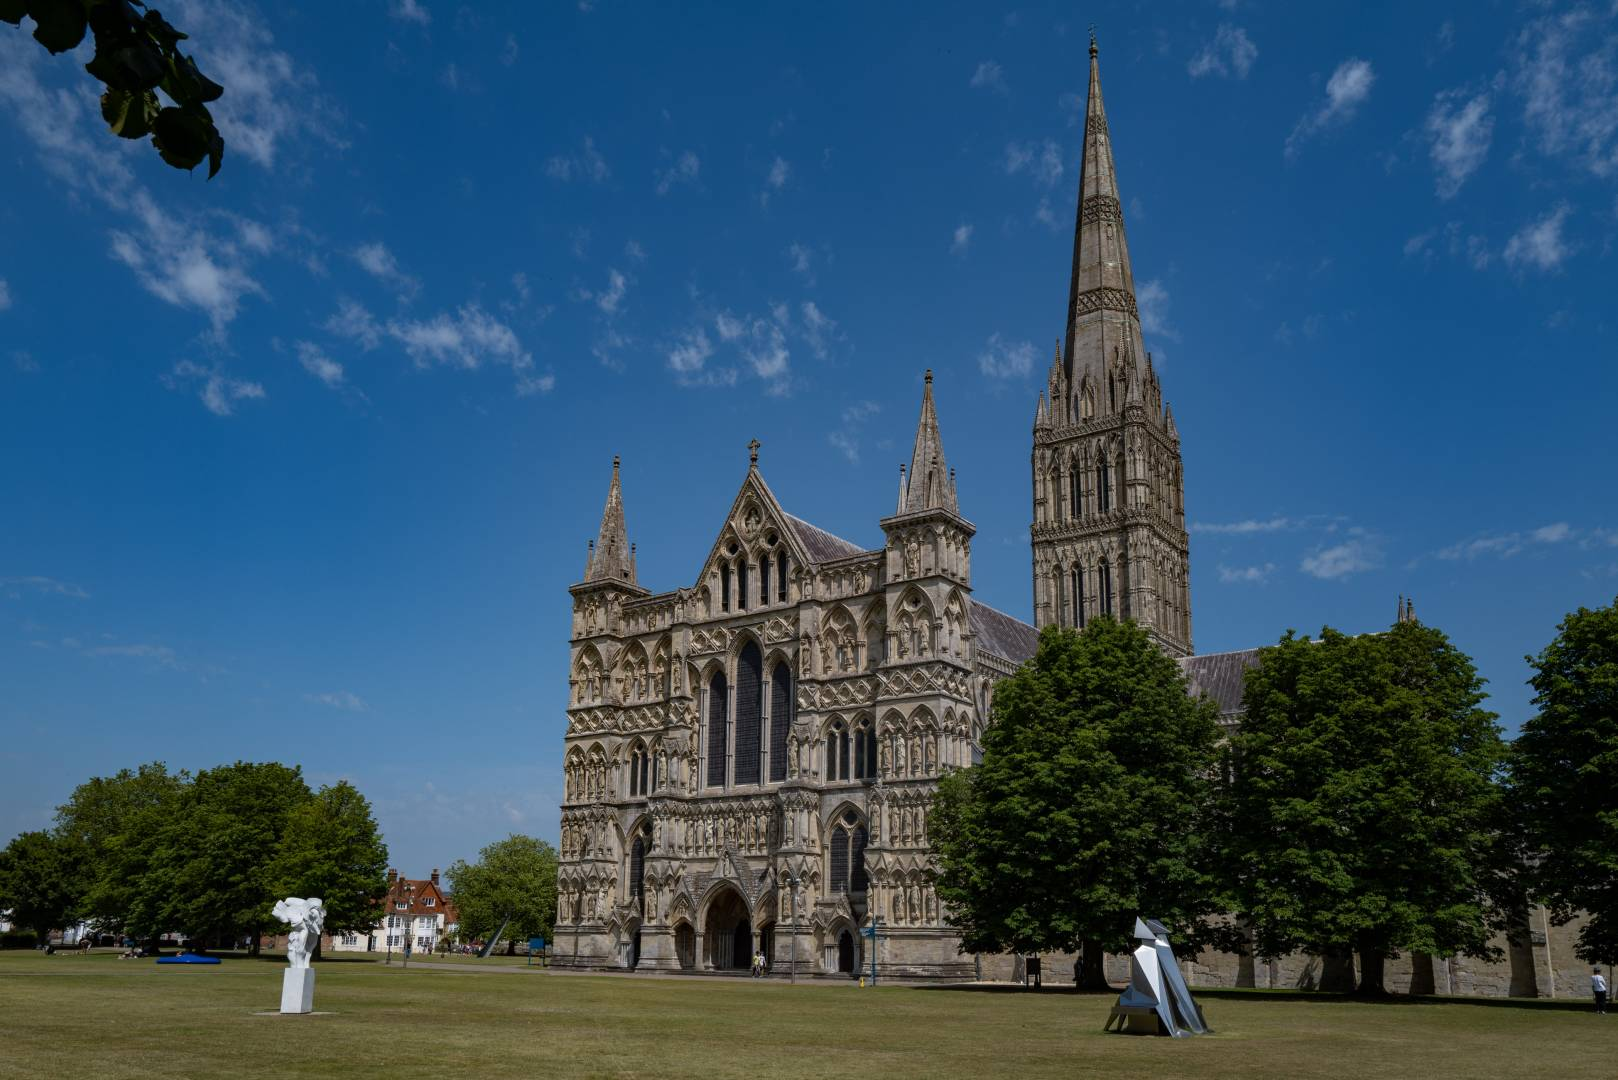 More artworks guard the XXXX of the 13th-century cathedral